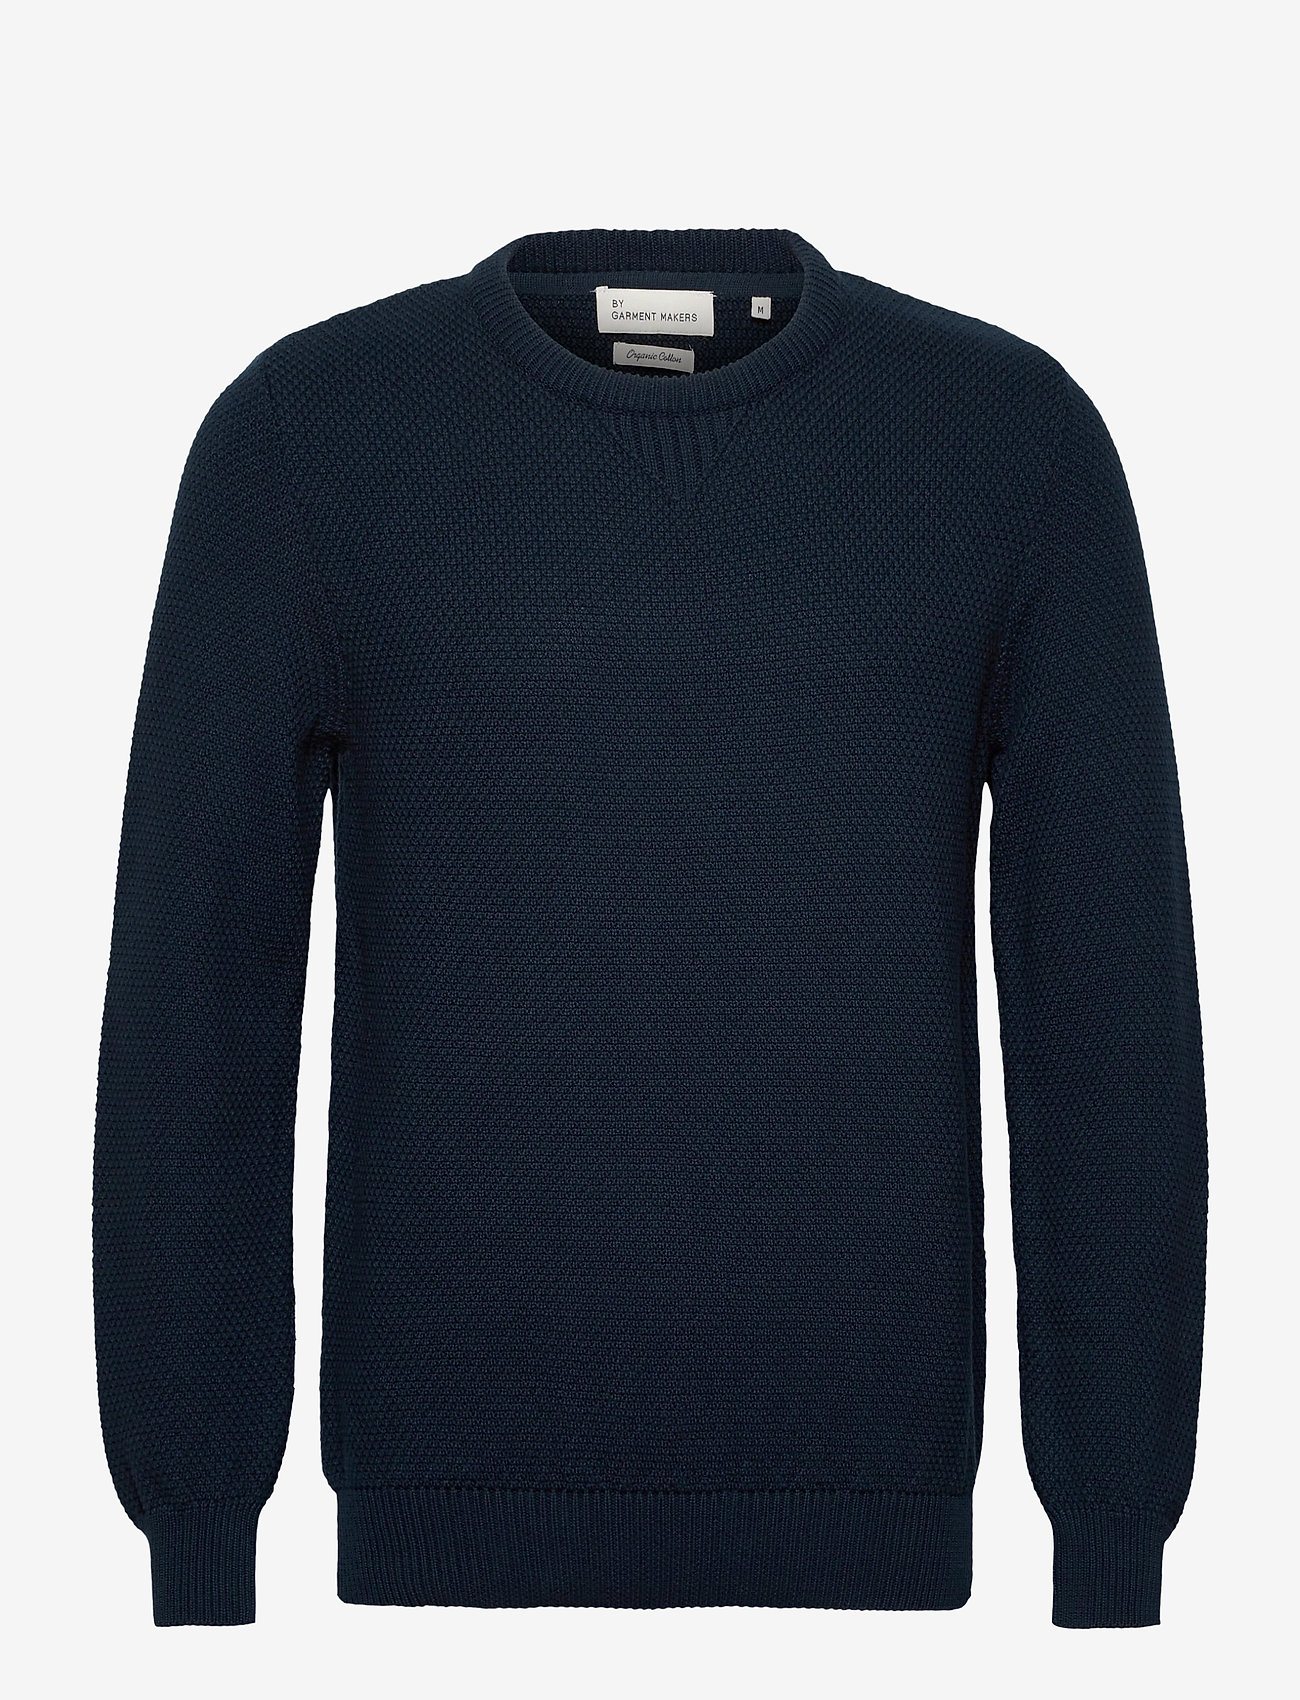 By Garment Makers The Organic Waffle Knit - Strikkevarer NAVY BLAZER - Menn Klær